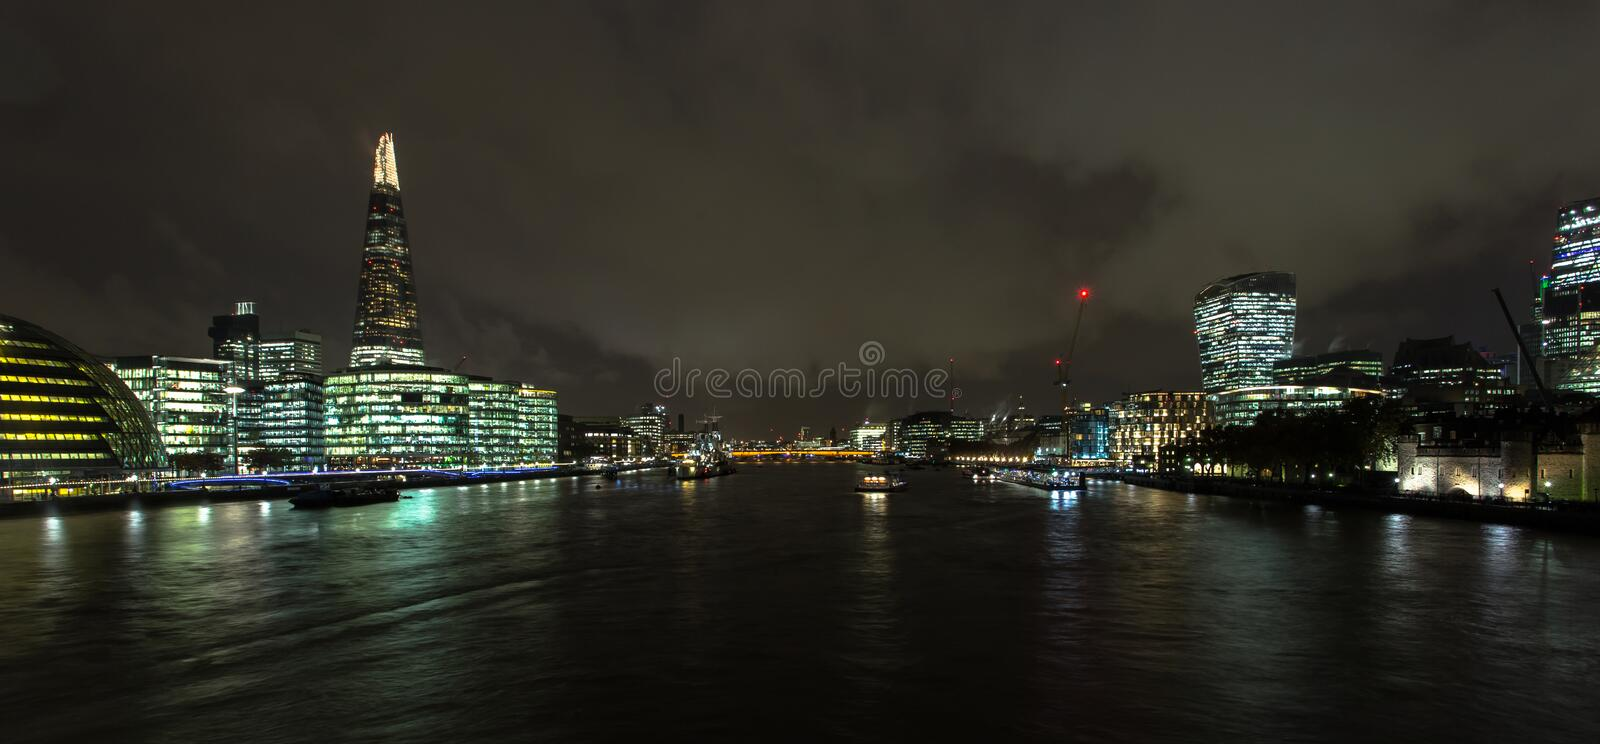 London skyline over the River Thames at night stock photography